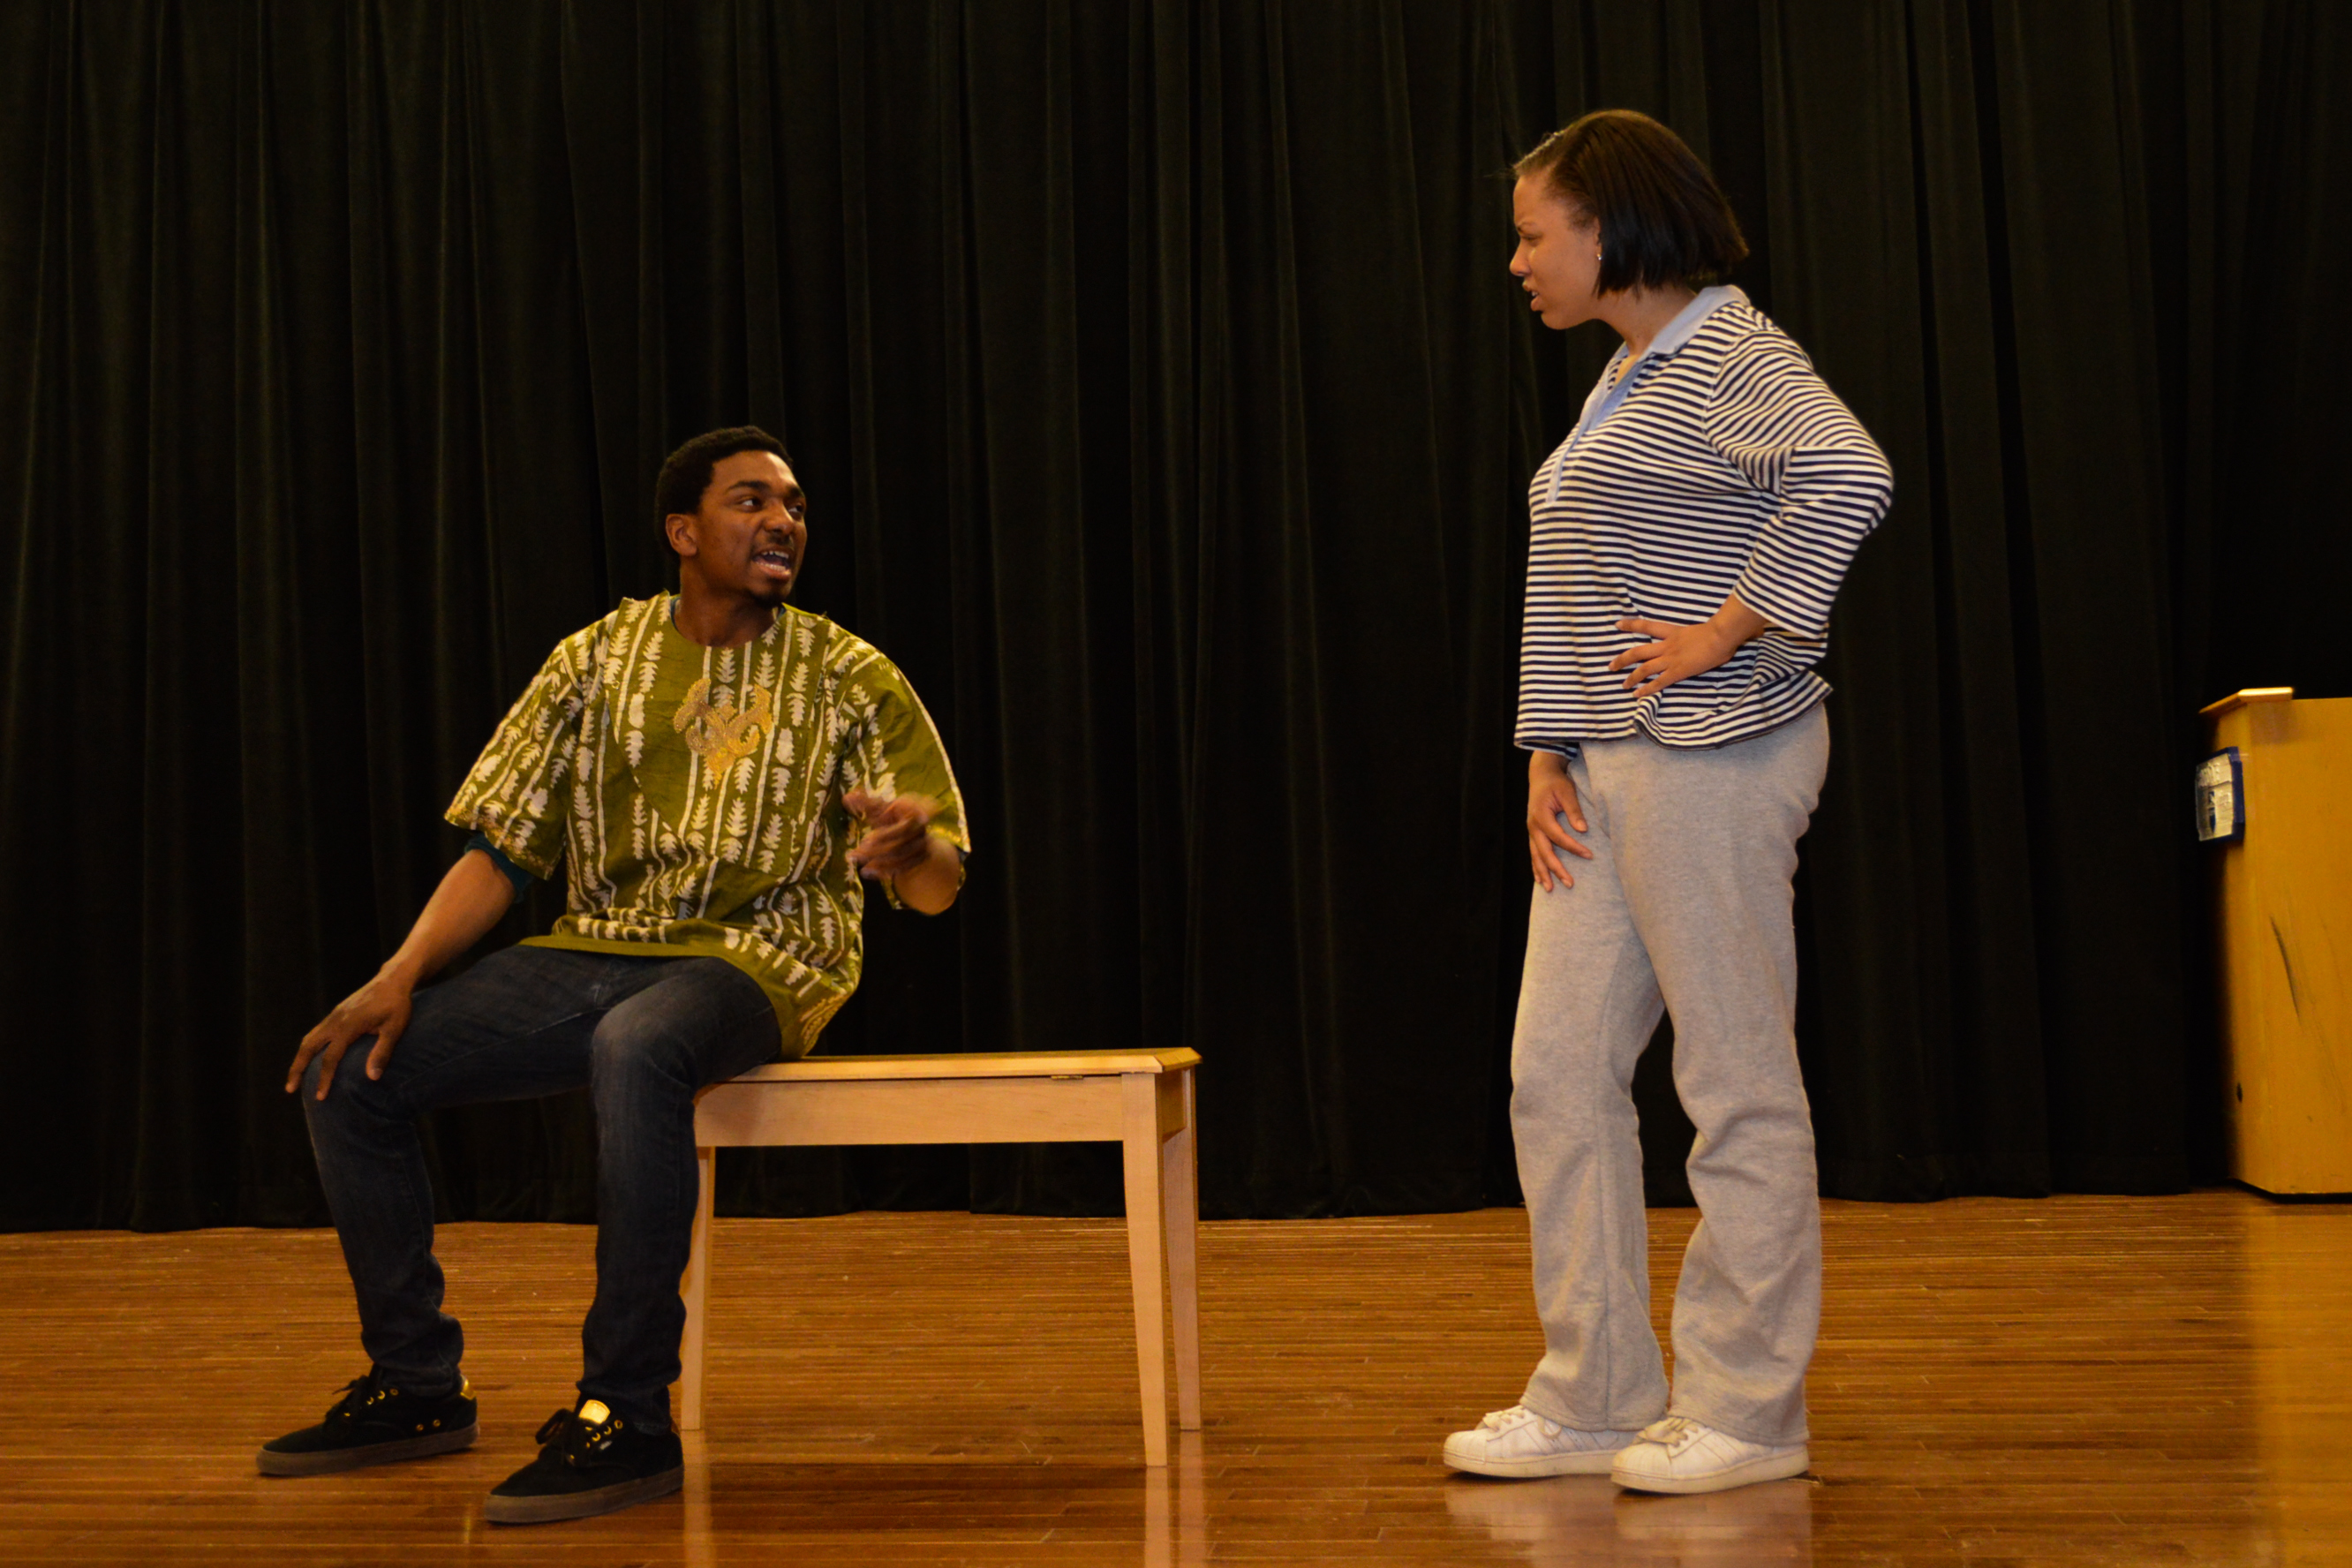 Abington Theater Explores African American Themes